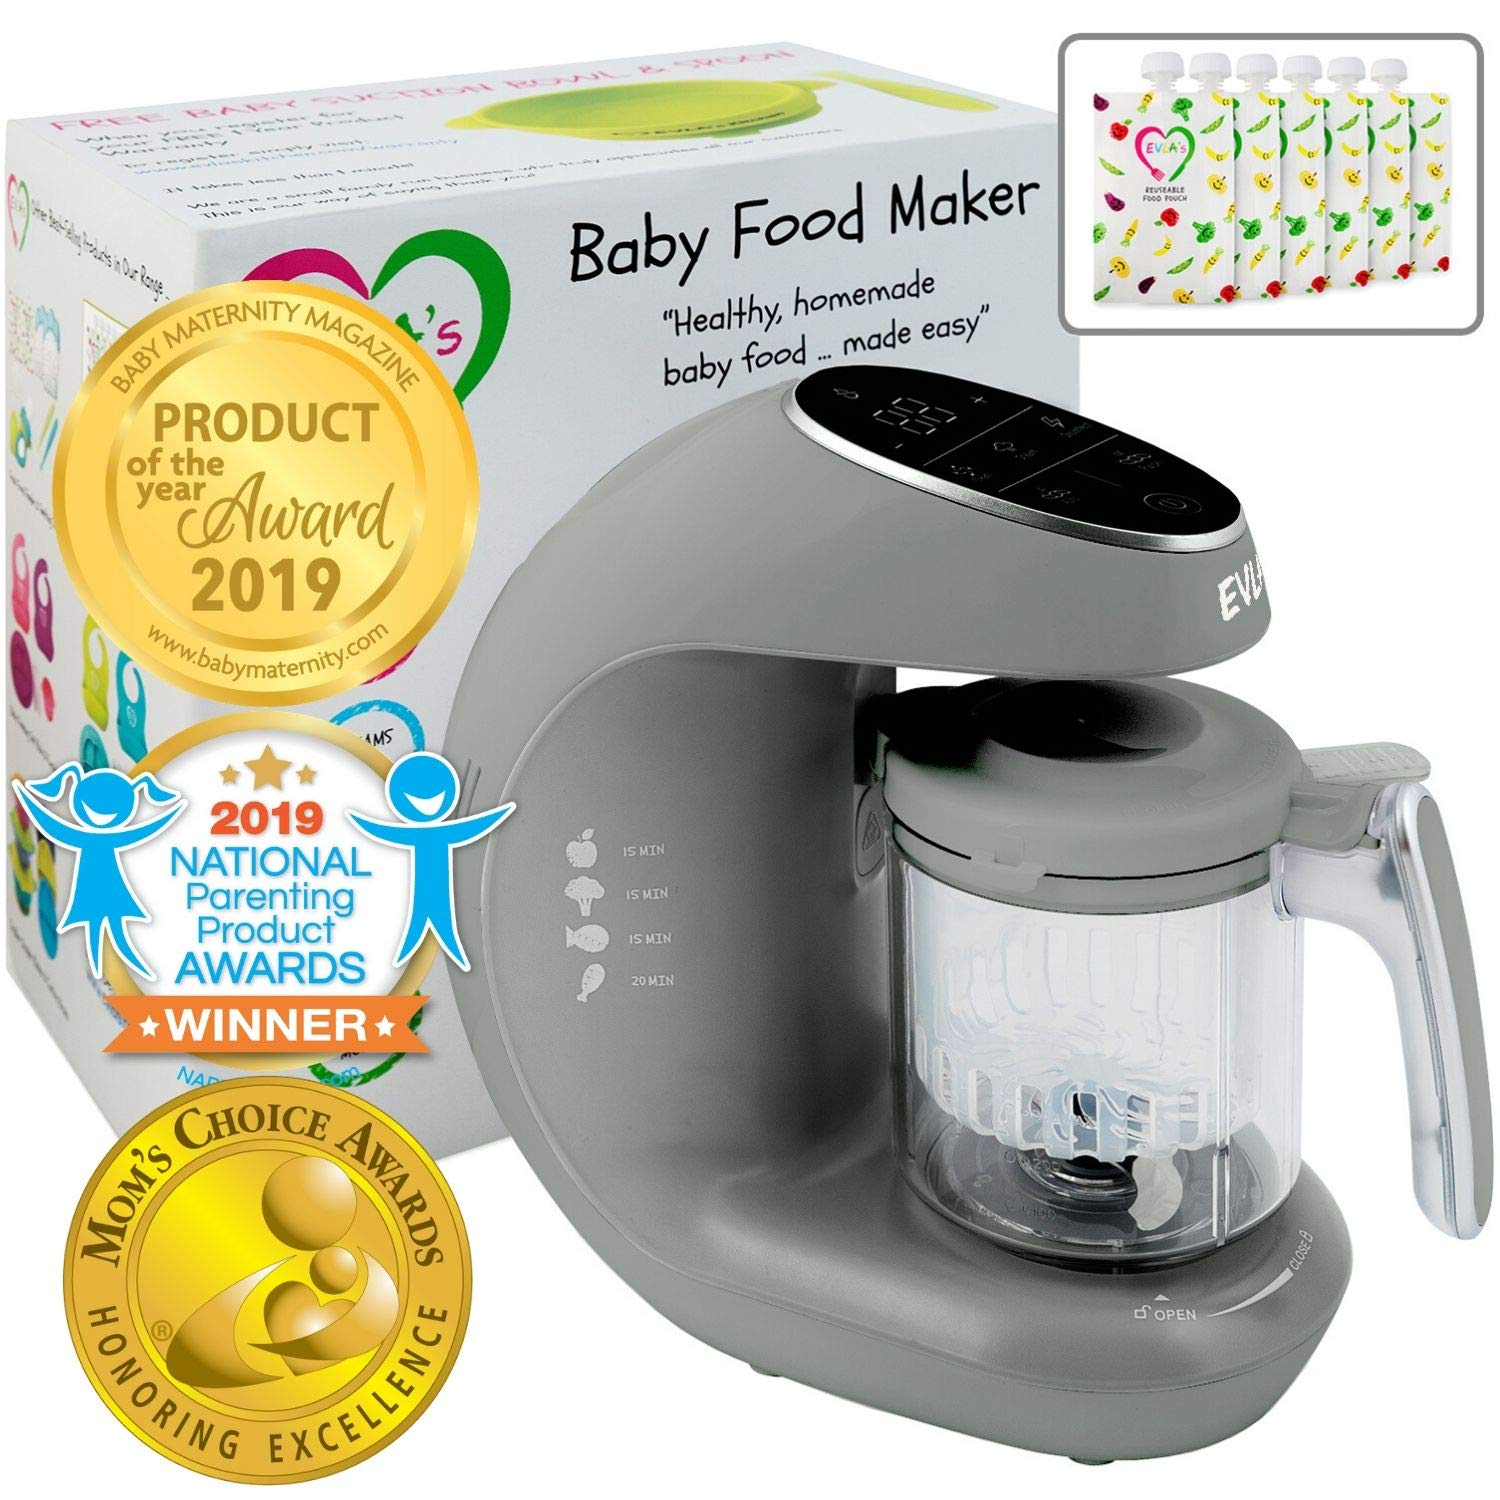 Baby Food Maker | Baby Food Processor Blender Grinder Steamer | Cooks & Blends Healthy Homemade Baby Food in Minutes | Self Cleans | Touch Screen Control | FDA Approved | 6 Reusable Food Pouche